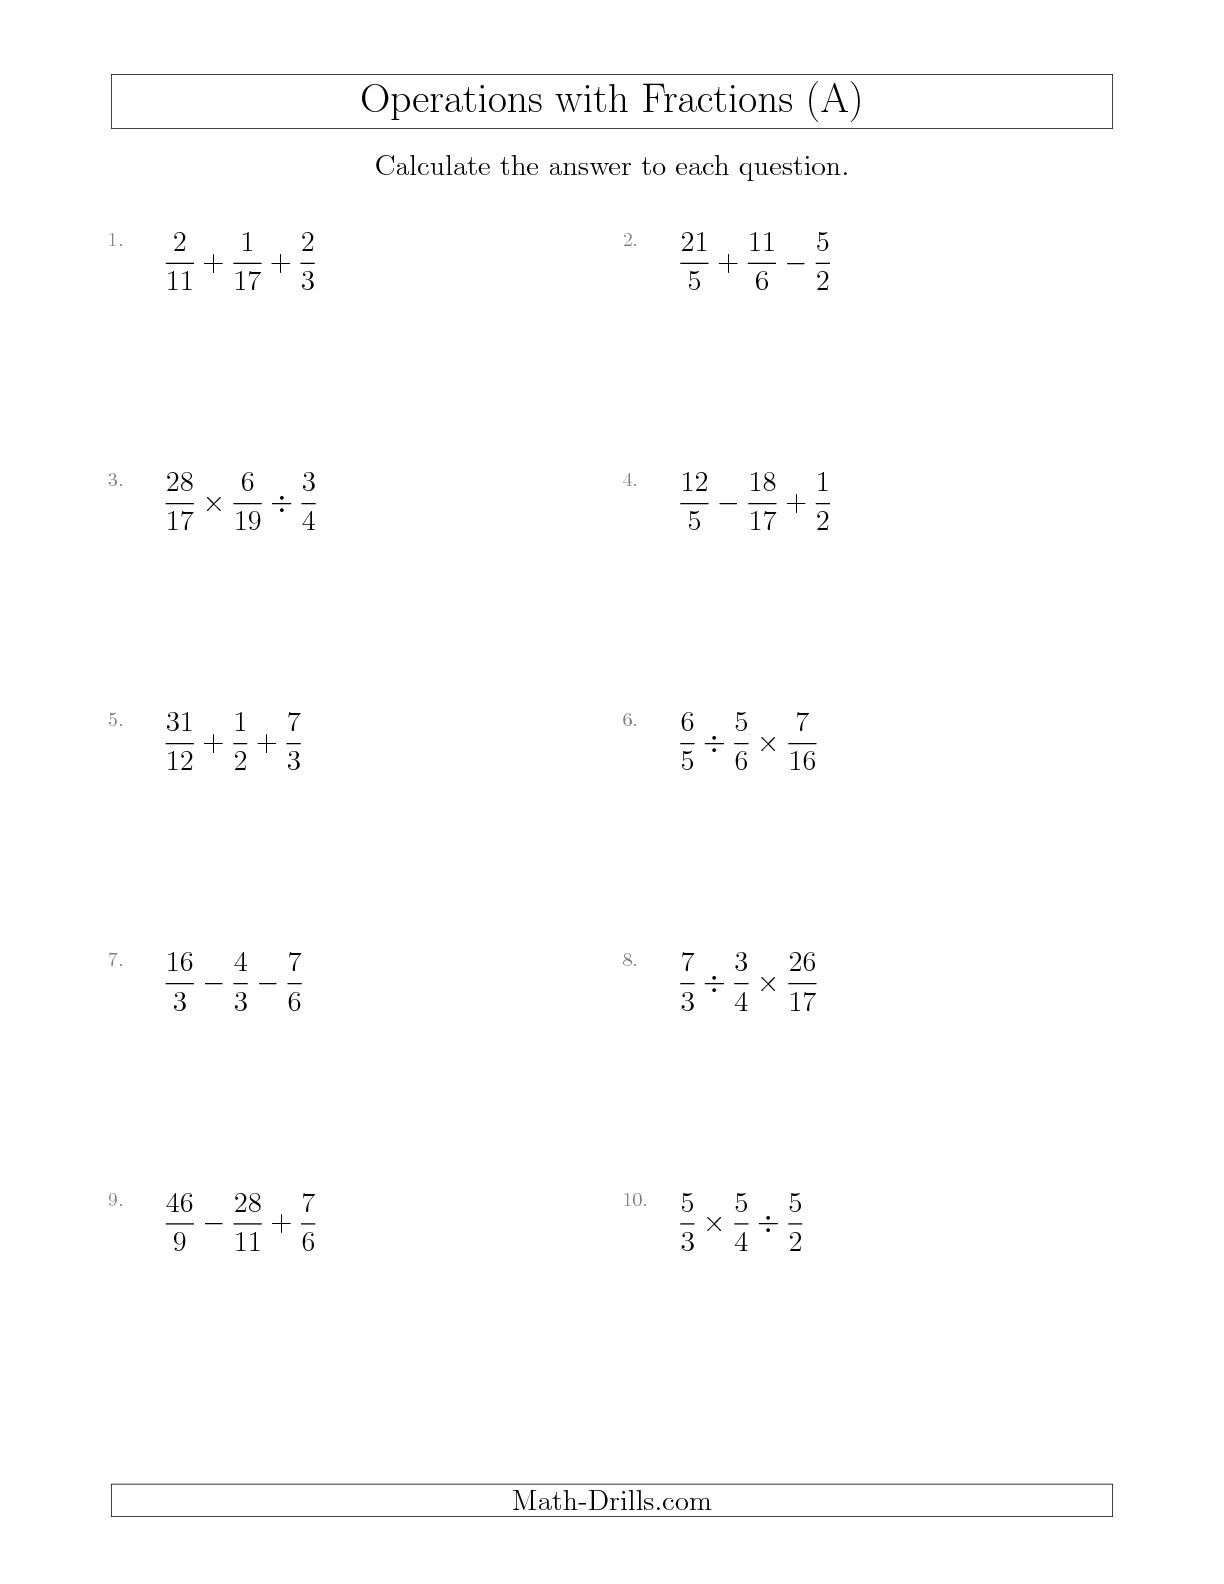 worksheet Mixed Fractions To Improper Fractions Worksheet new mixed operations with three fractions including improper a math worksheet